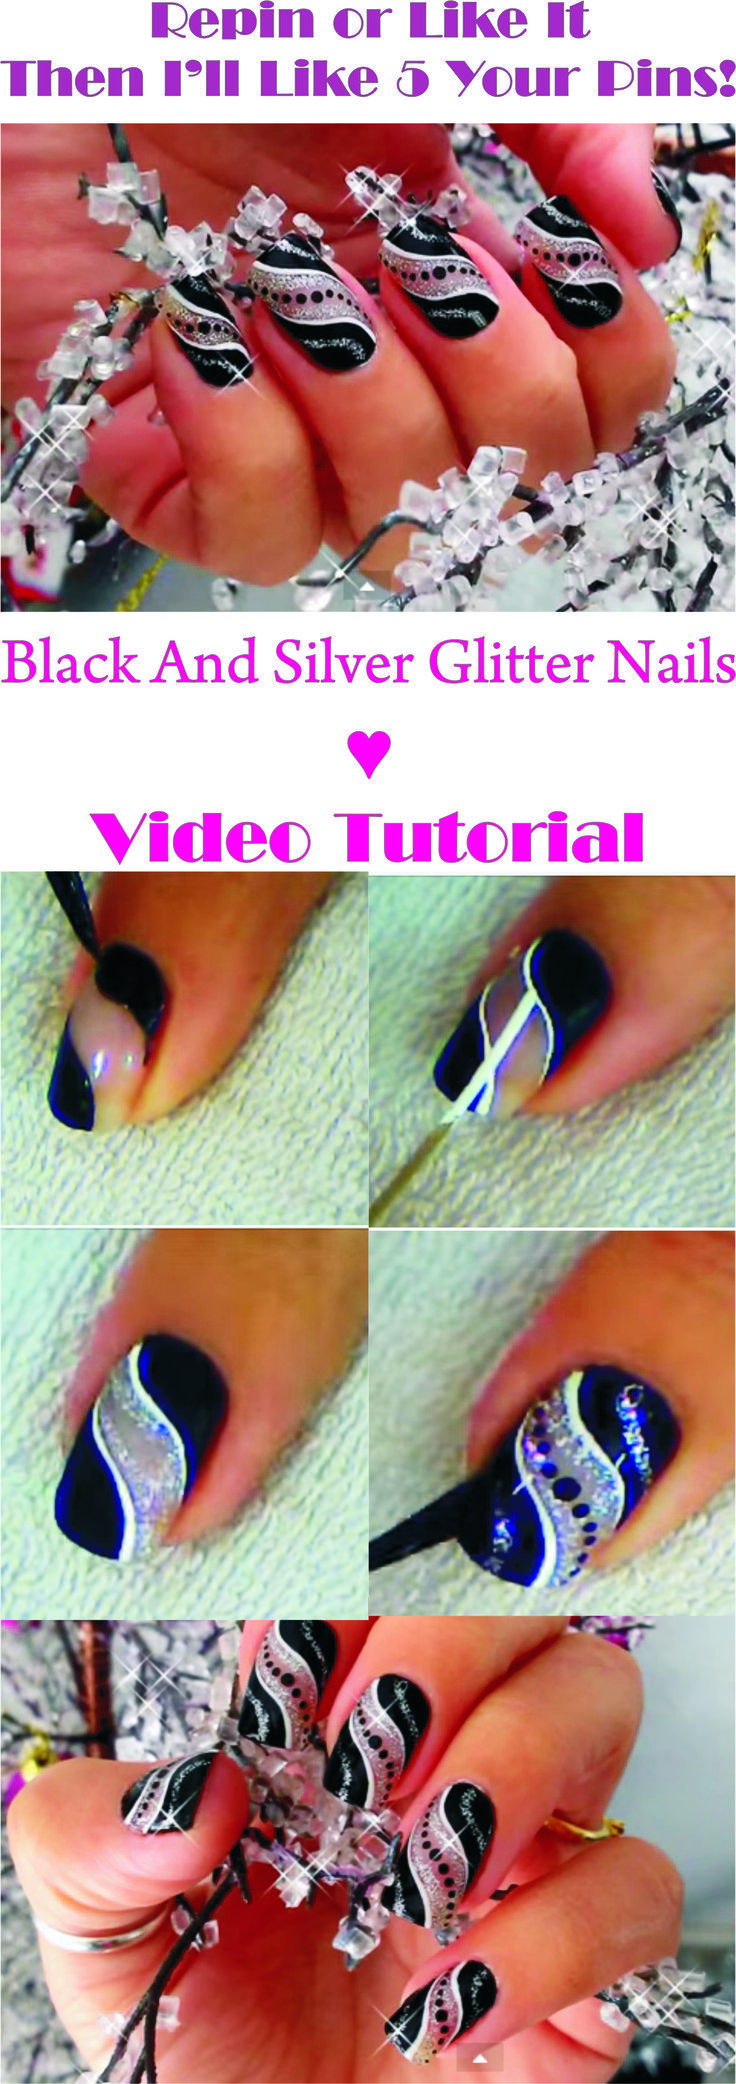 1671 best Uñas images on Pinterest | Nail scissors, Nail art and ...